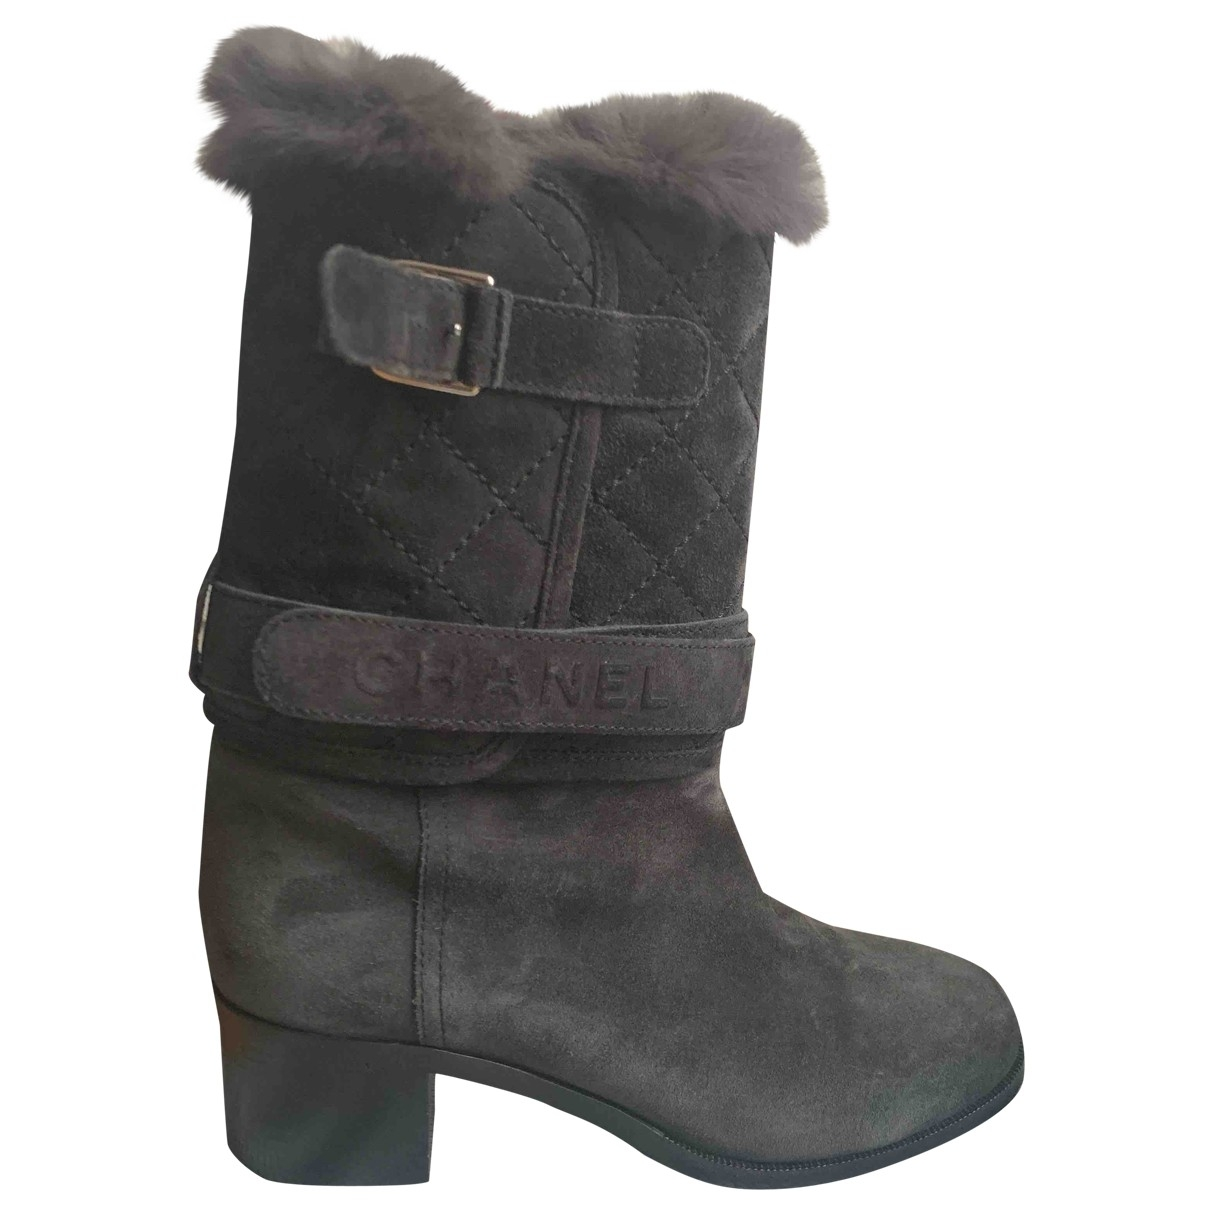 Chanel \N Anthracite Suede Boots for Women 39 EU